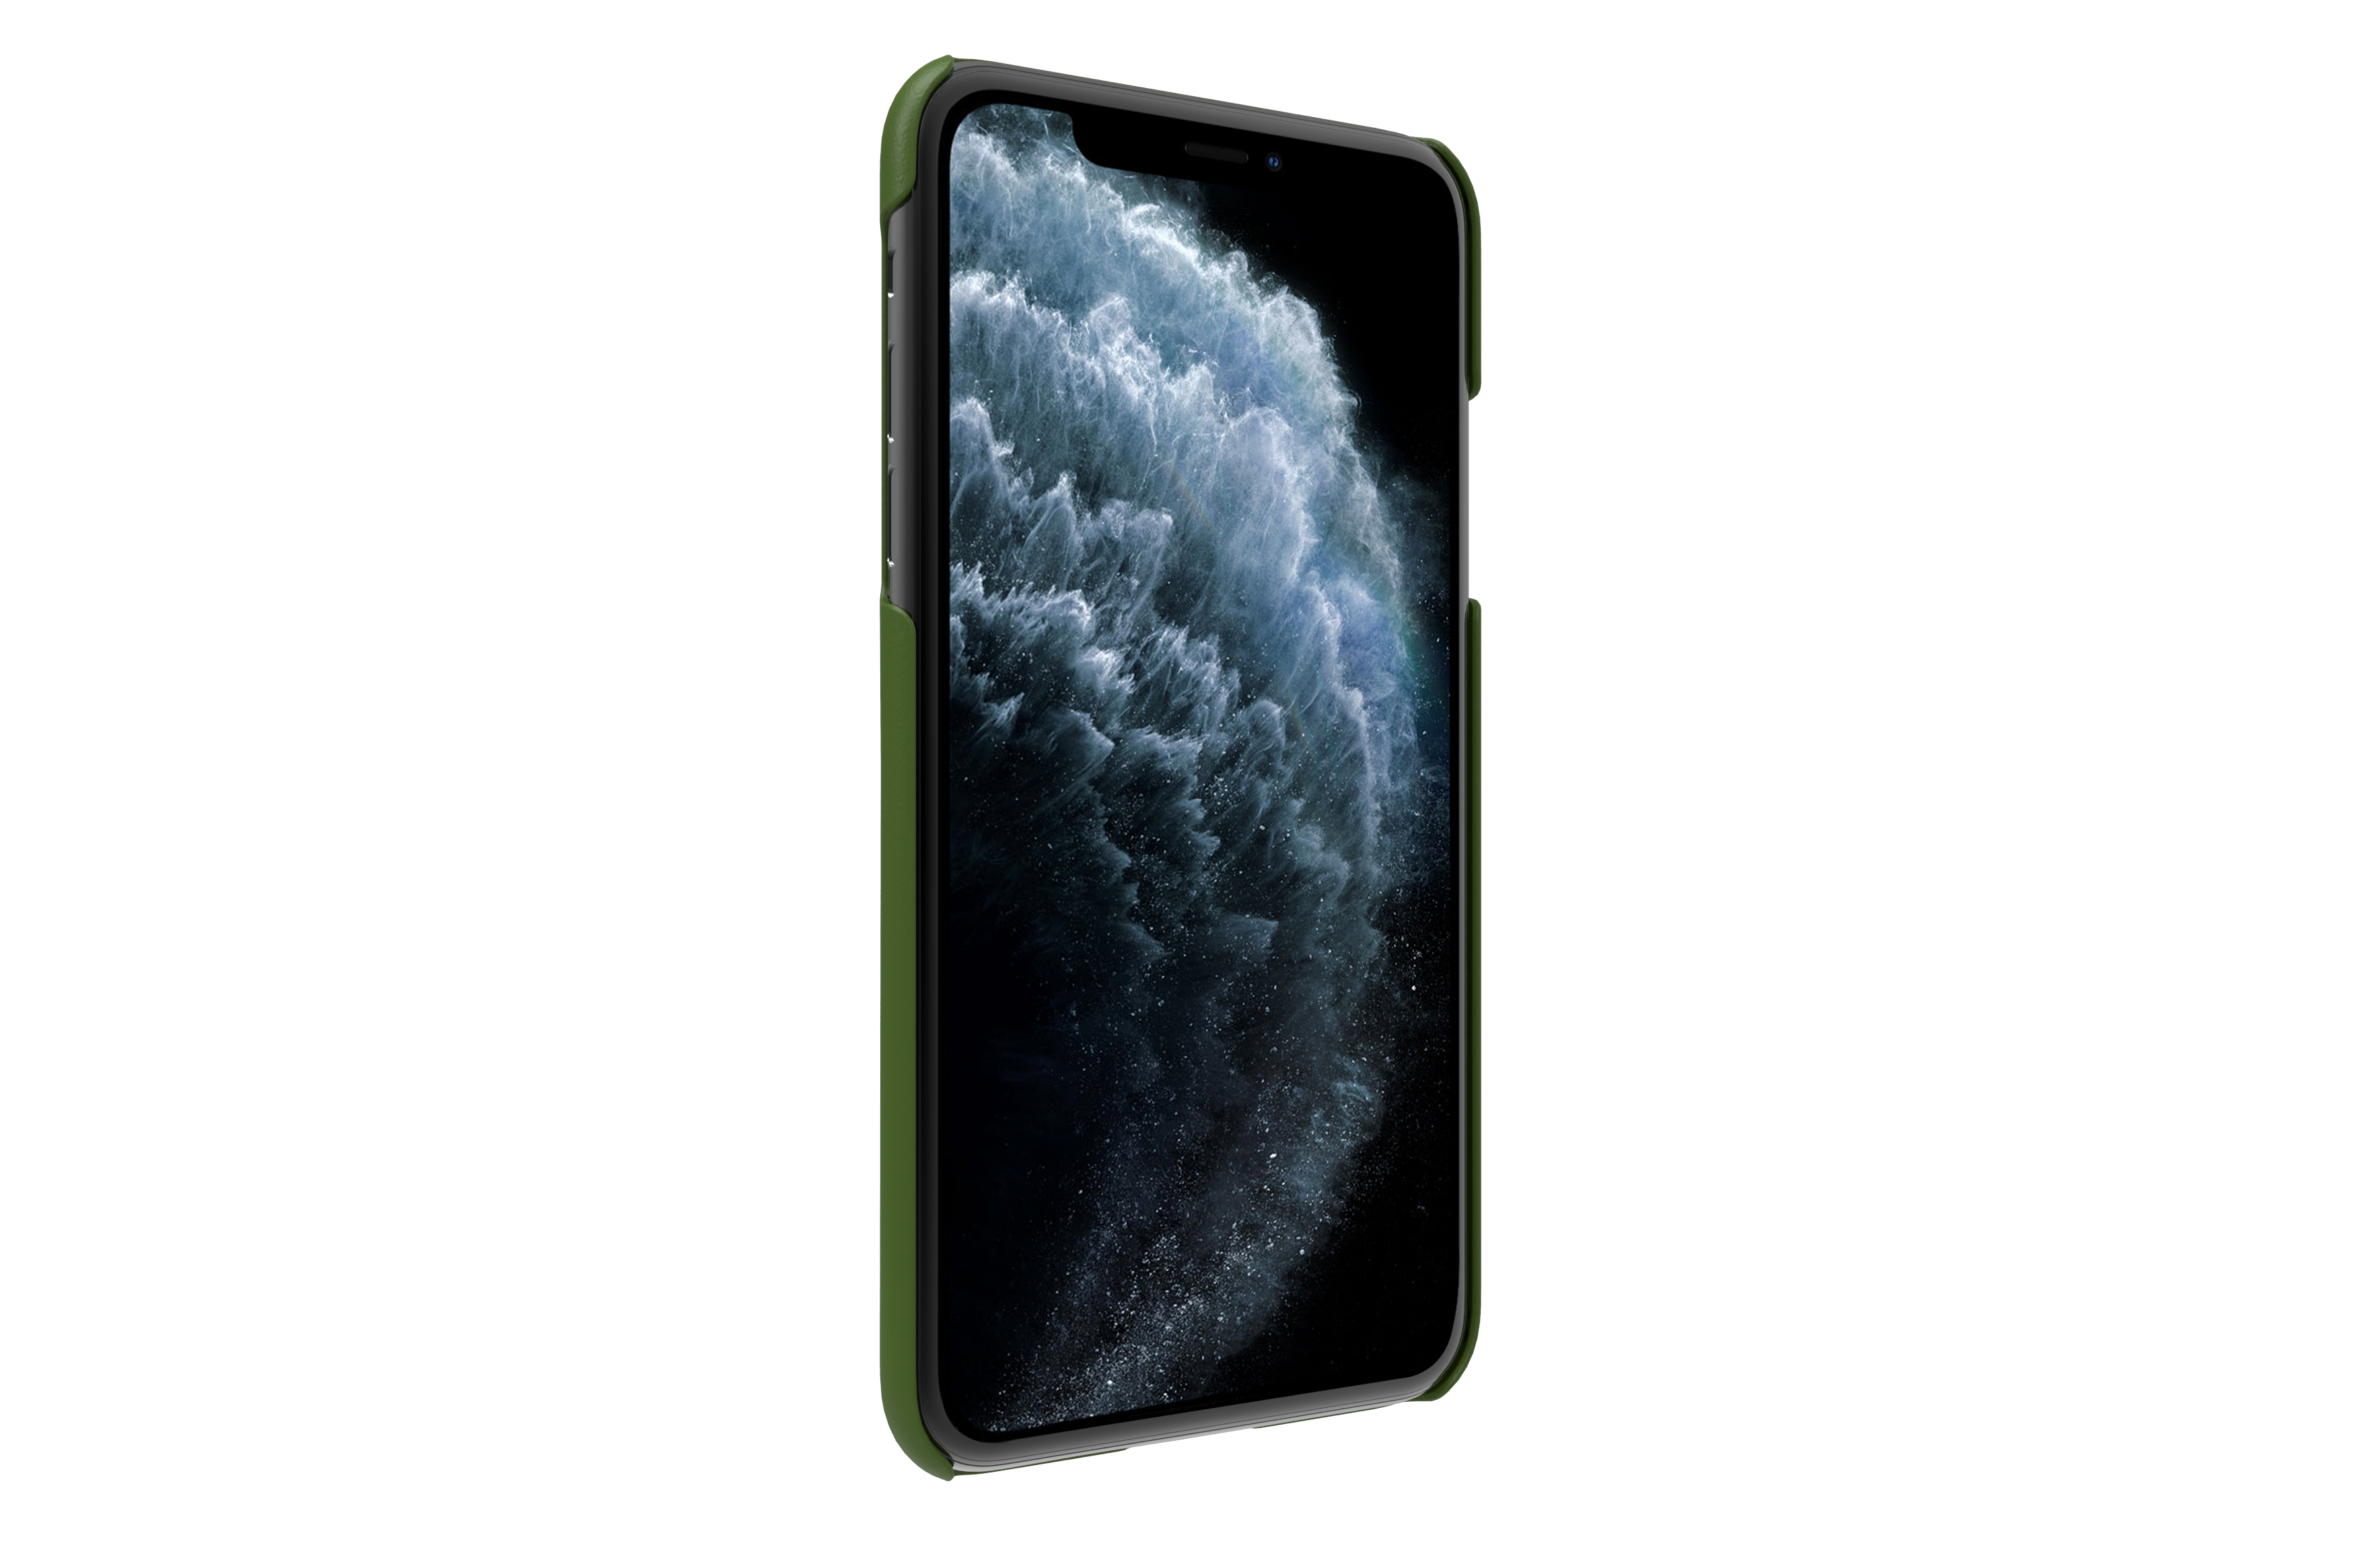 iphone11 pro max green-4